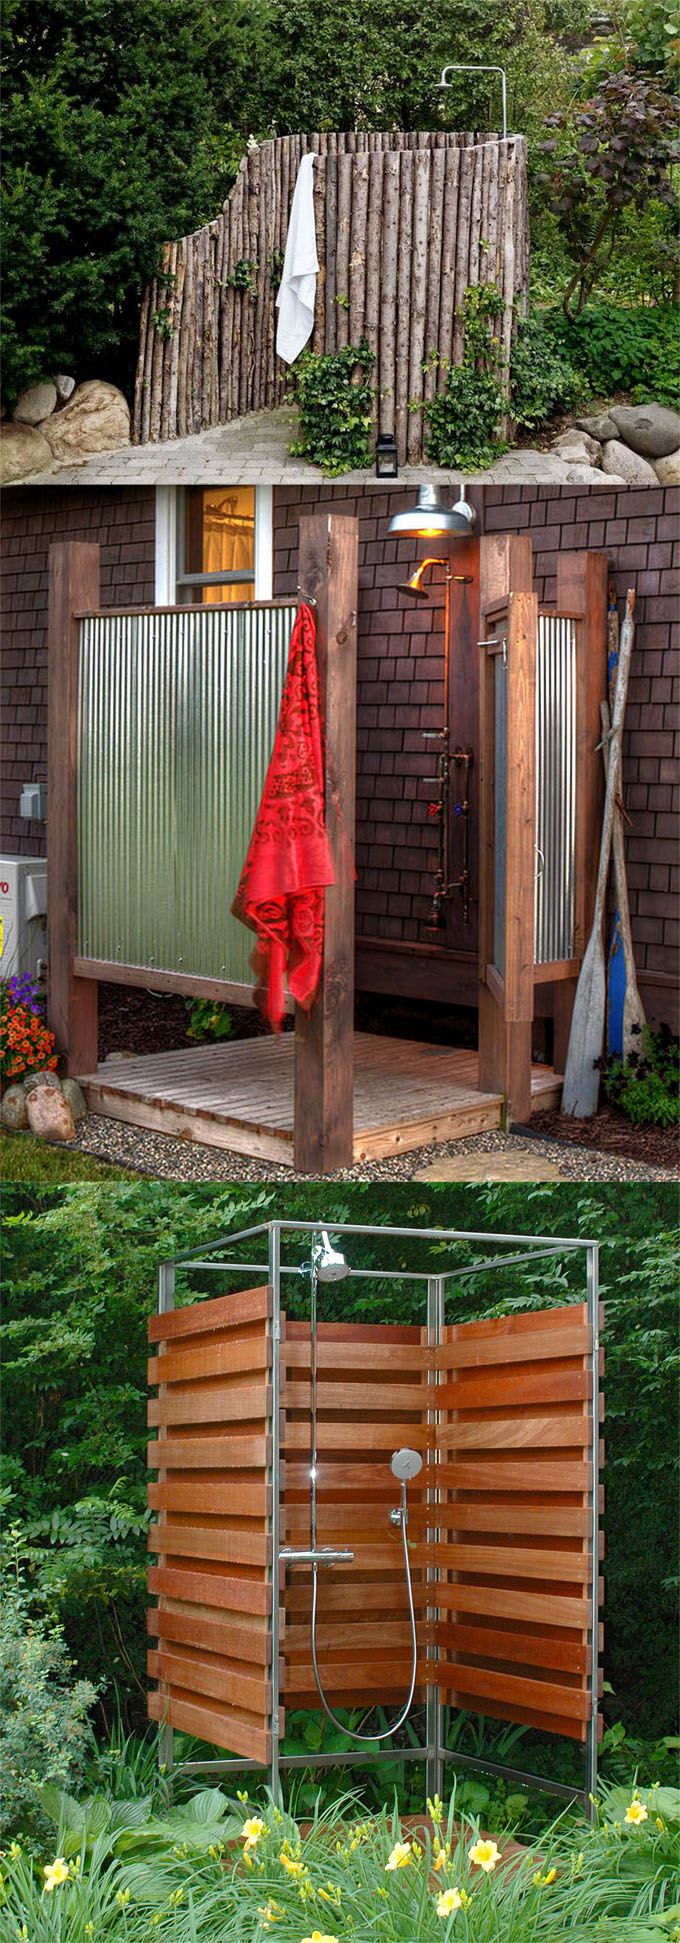 16 diy outdoor shower ideas shower fixtures creative - How to make an outdoor shower ...